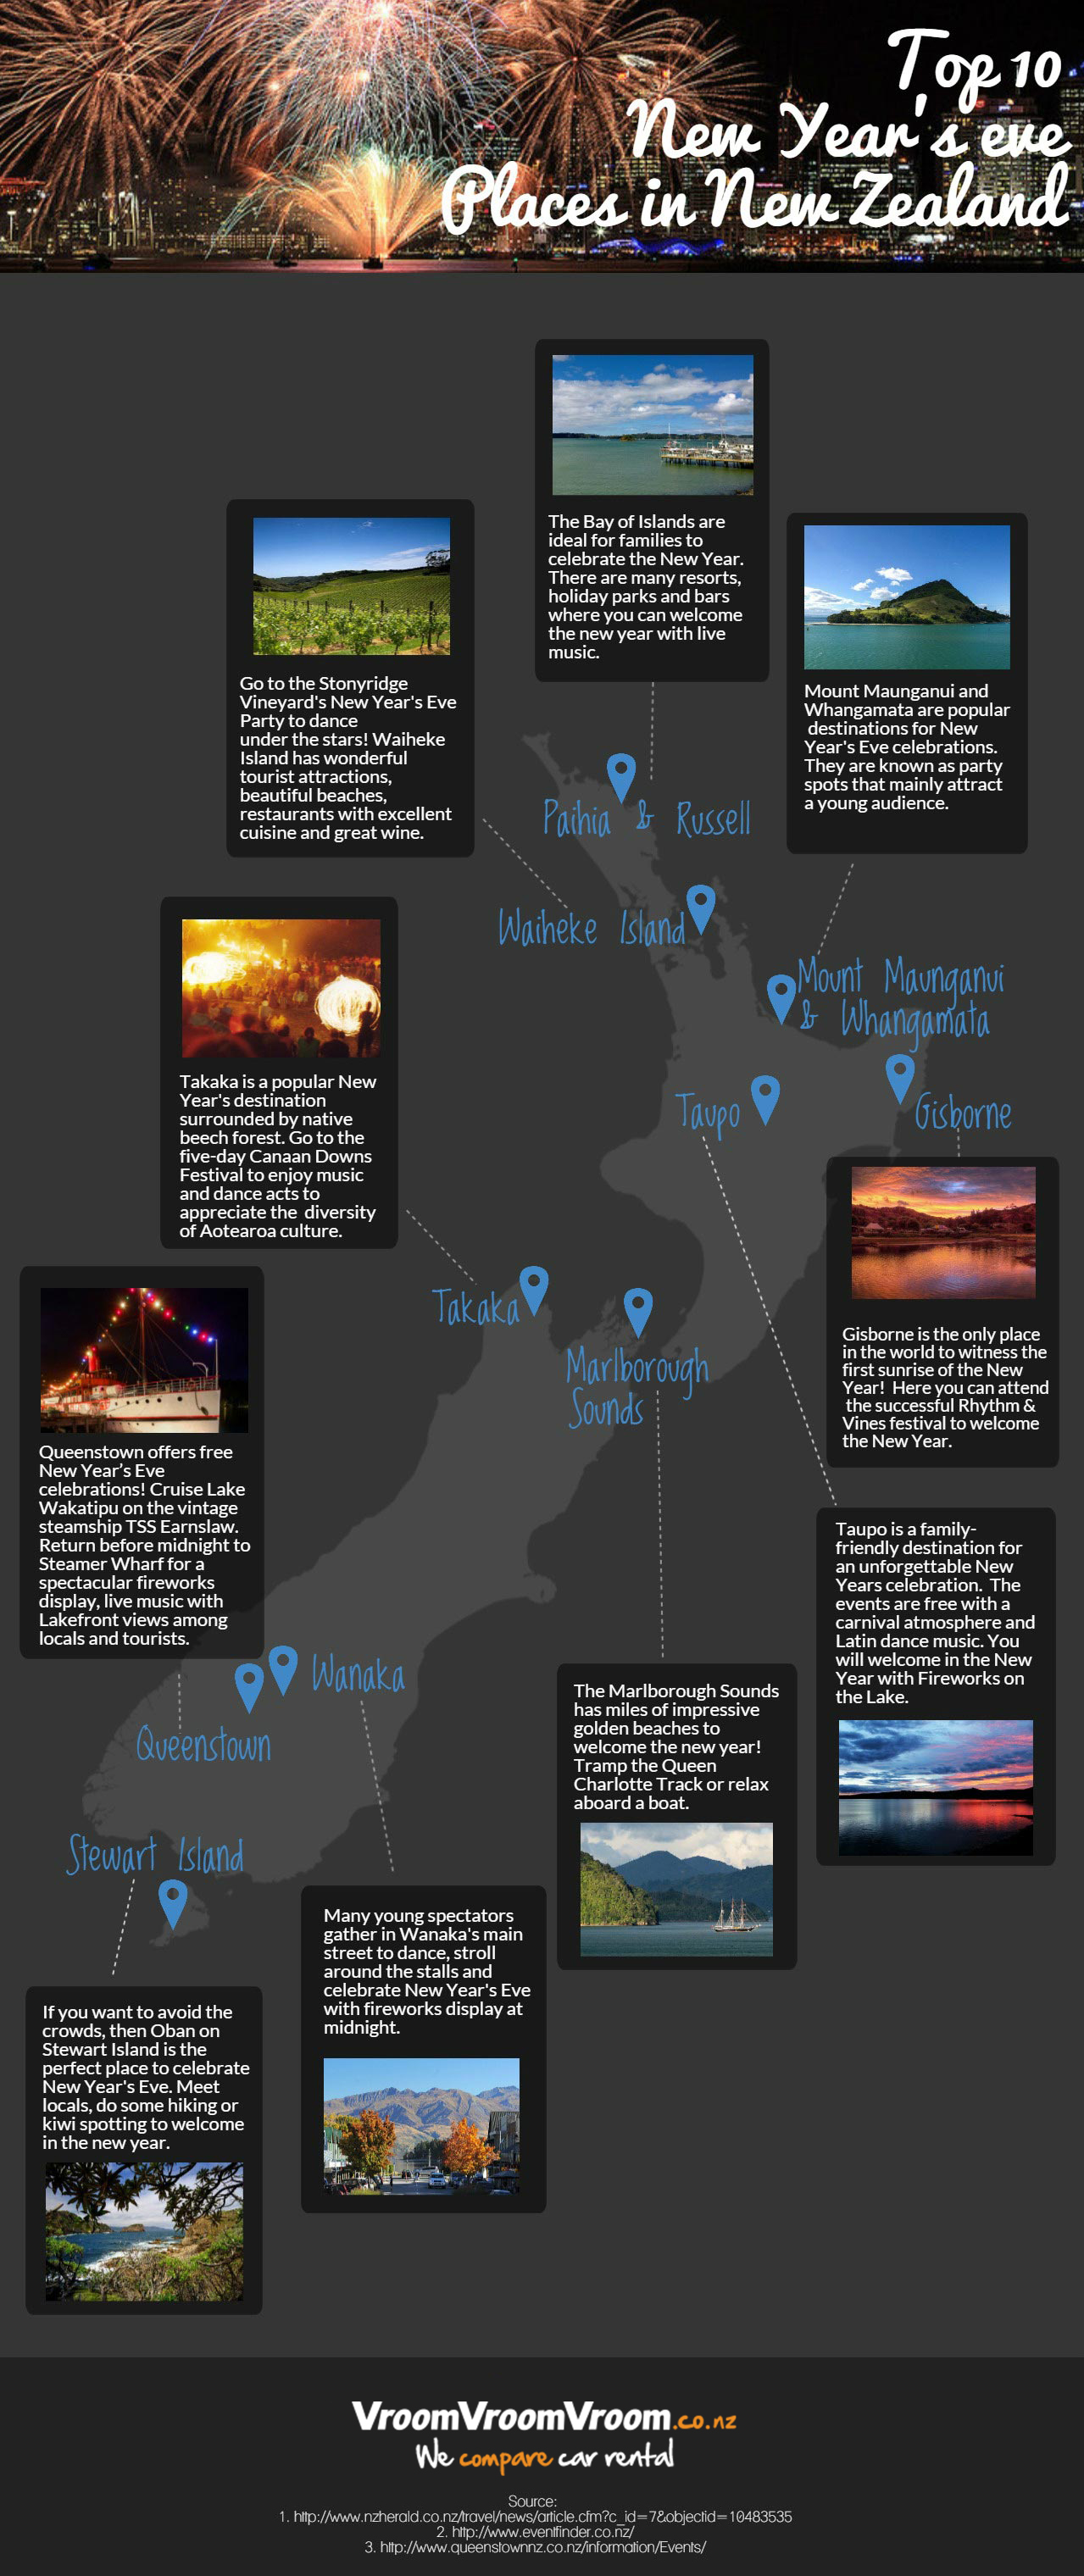 Top 10 NYE Places in NZ Infographic